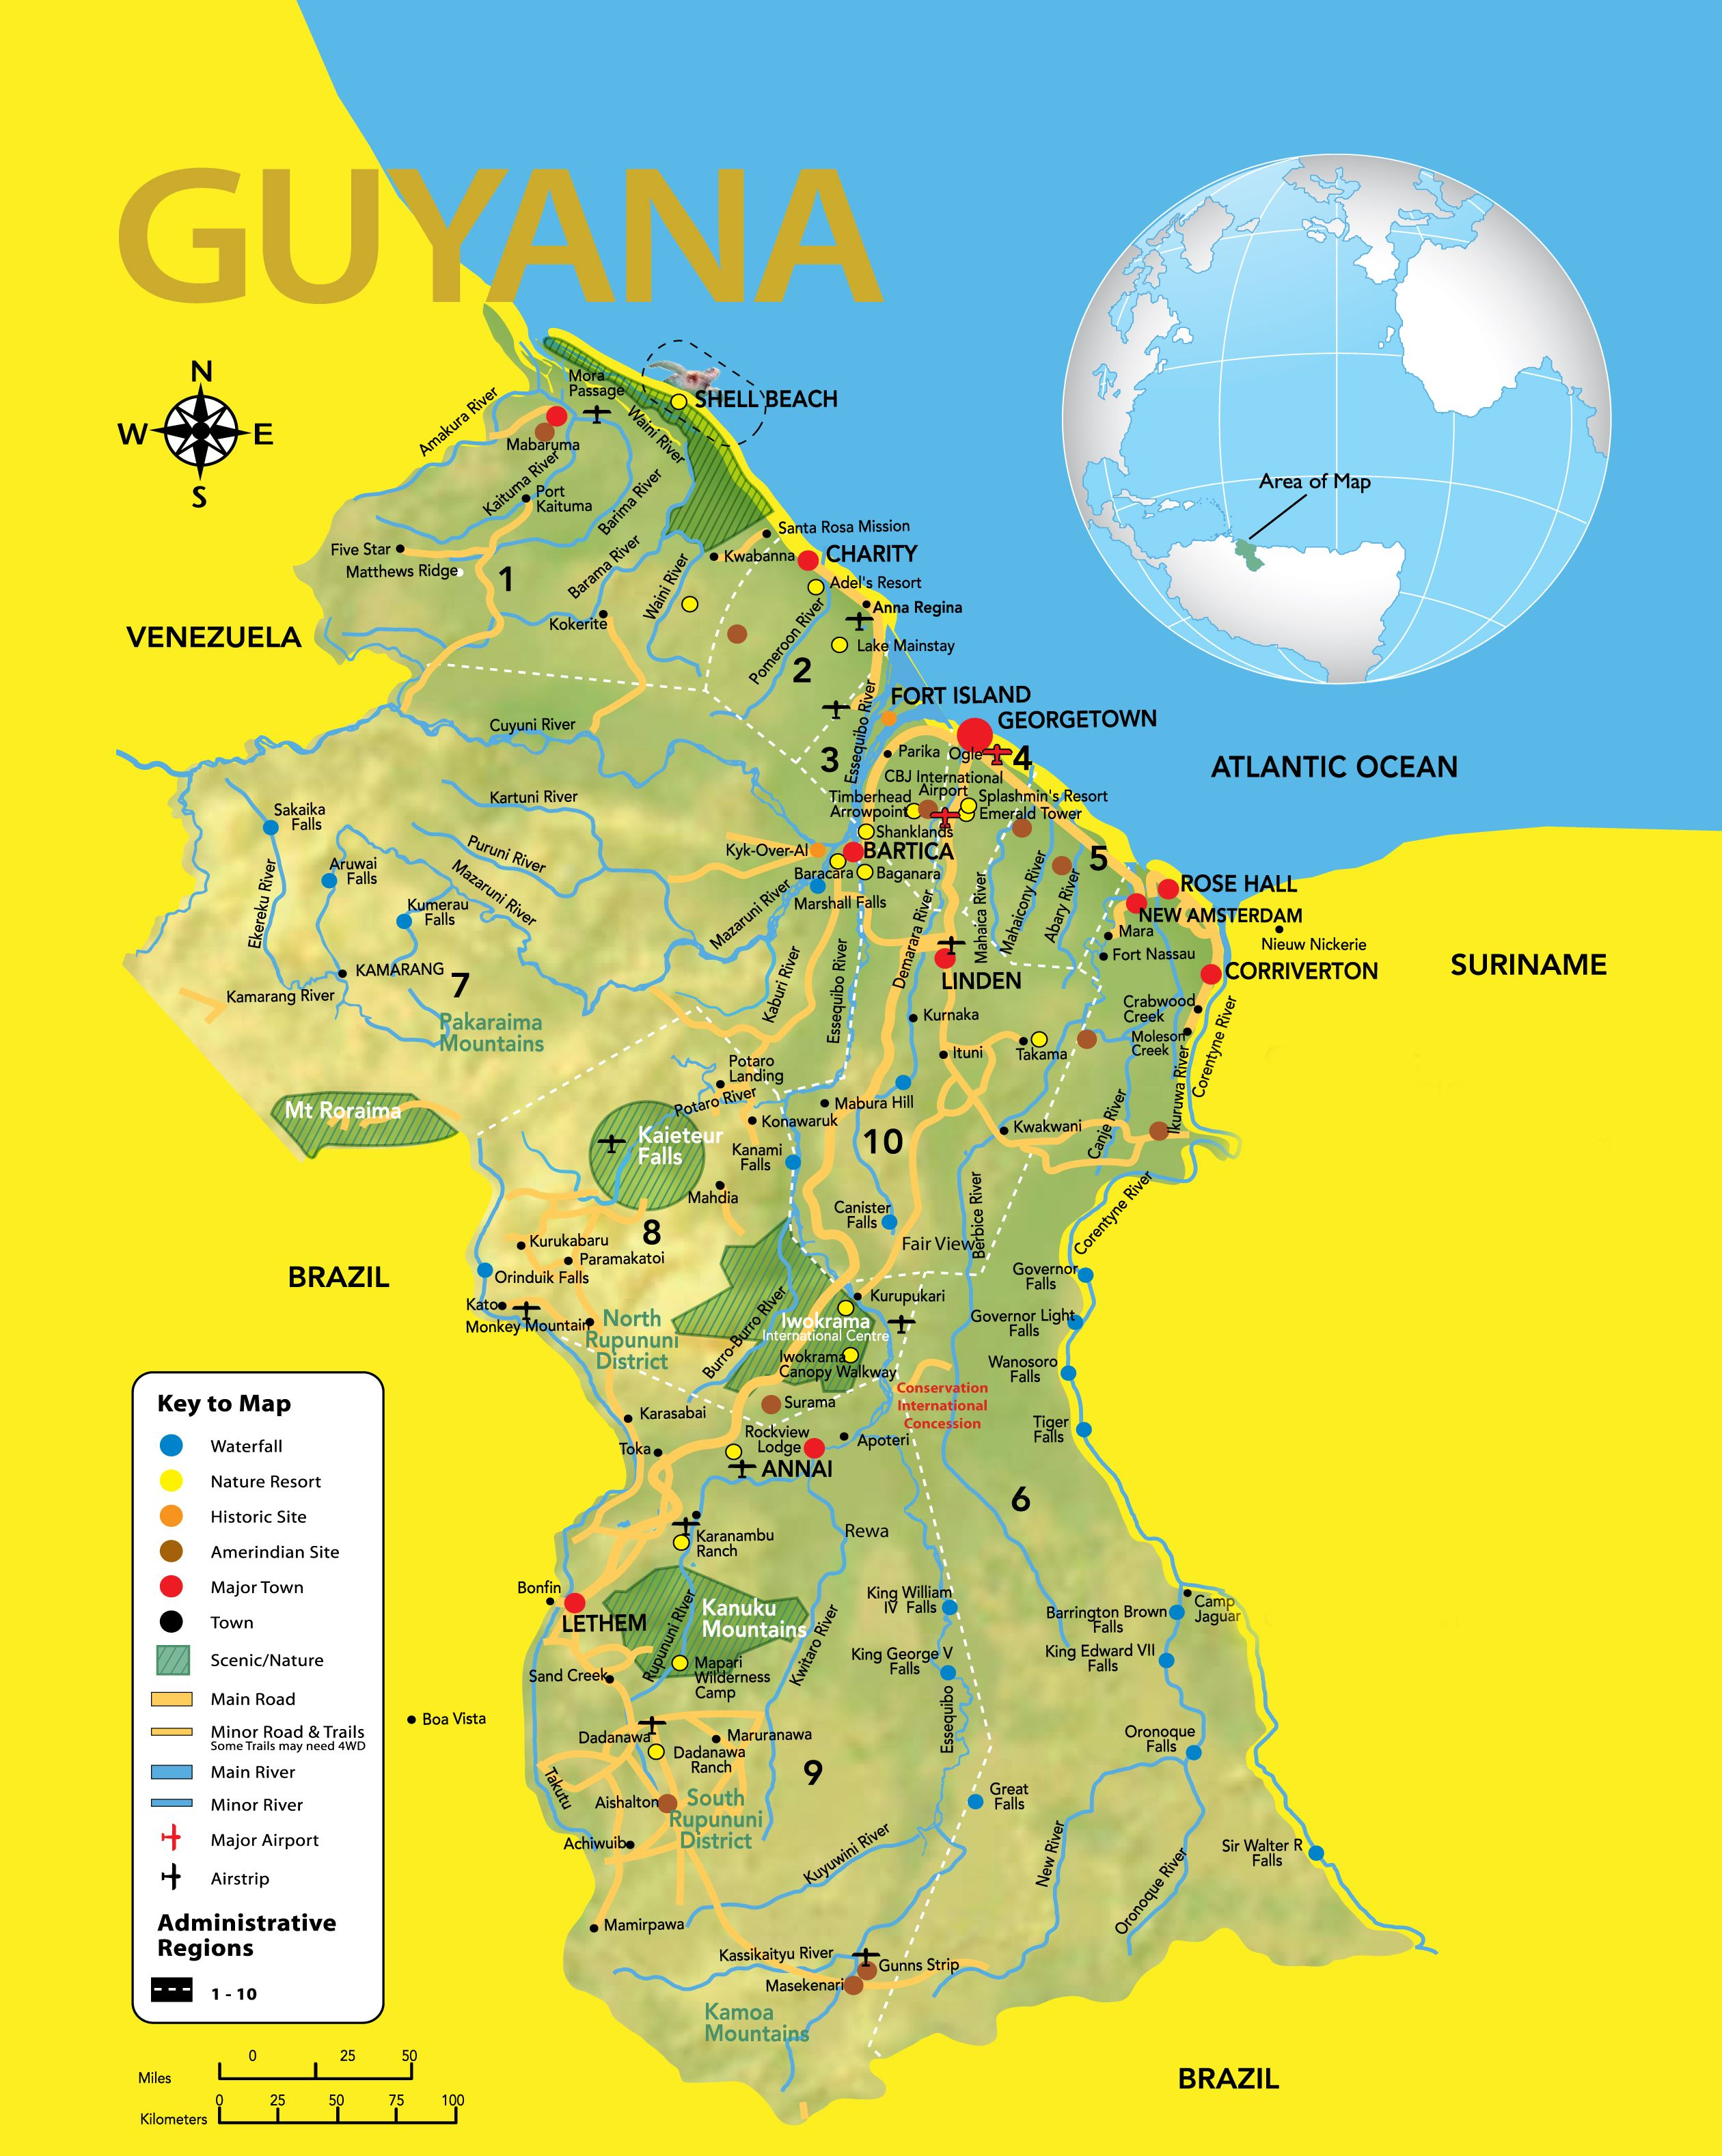 Guyana Road Map Showing All The Major Roads With Capital City And - Map of texas showing major cities